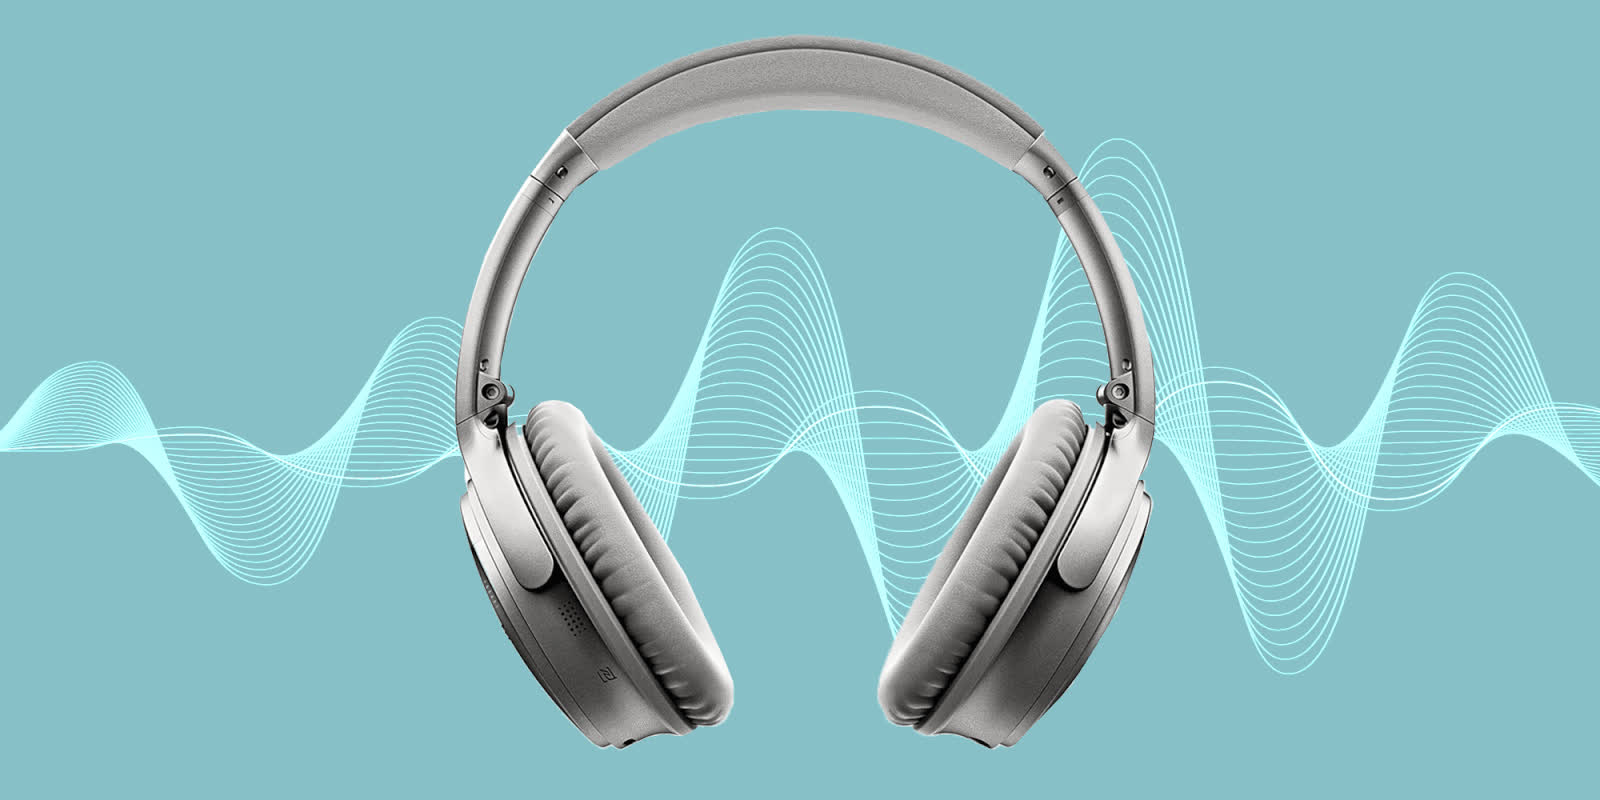 gallery noise cancelling headphones GIFs